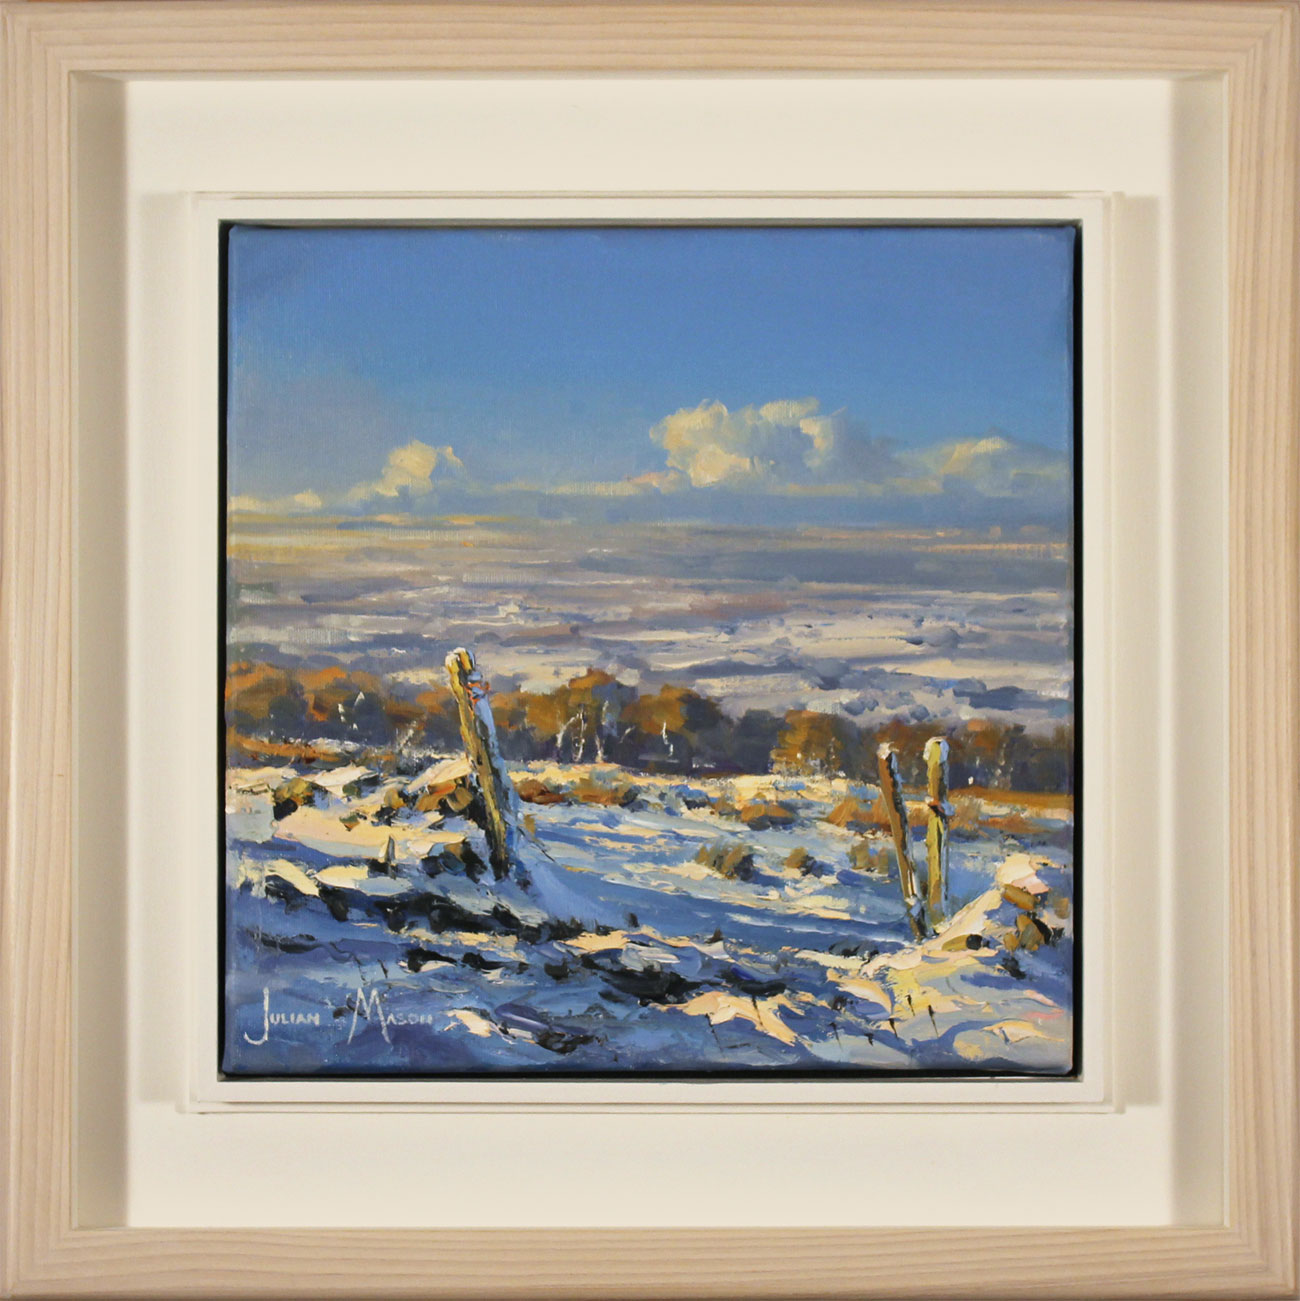 Julian Mason, Original oil painting on canvas, Snowfields. Click to enlarge